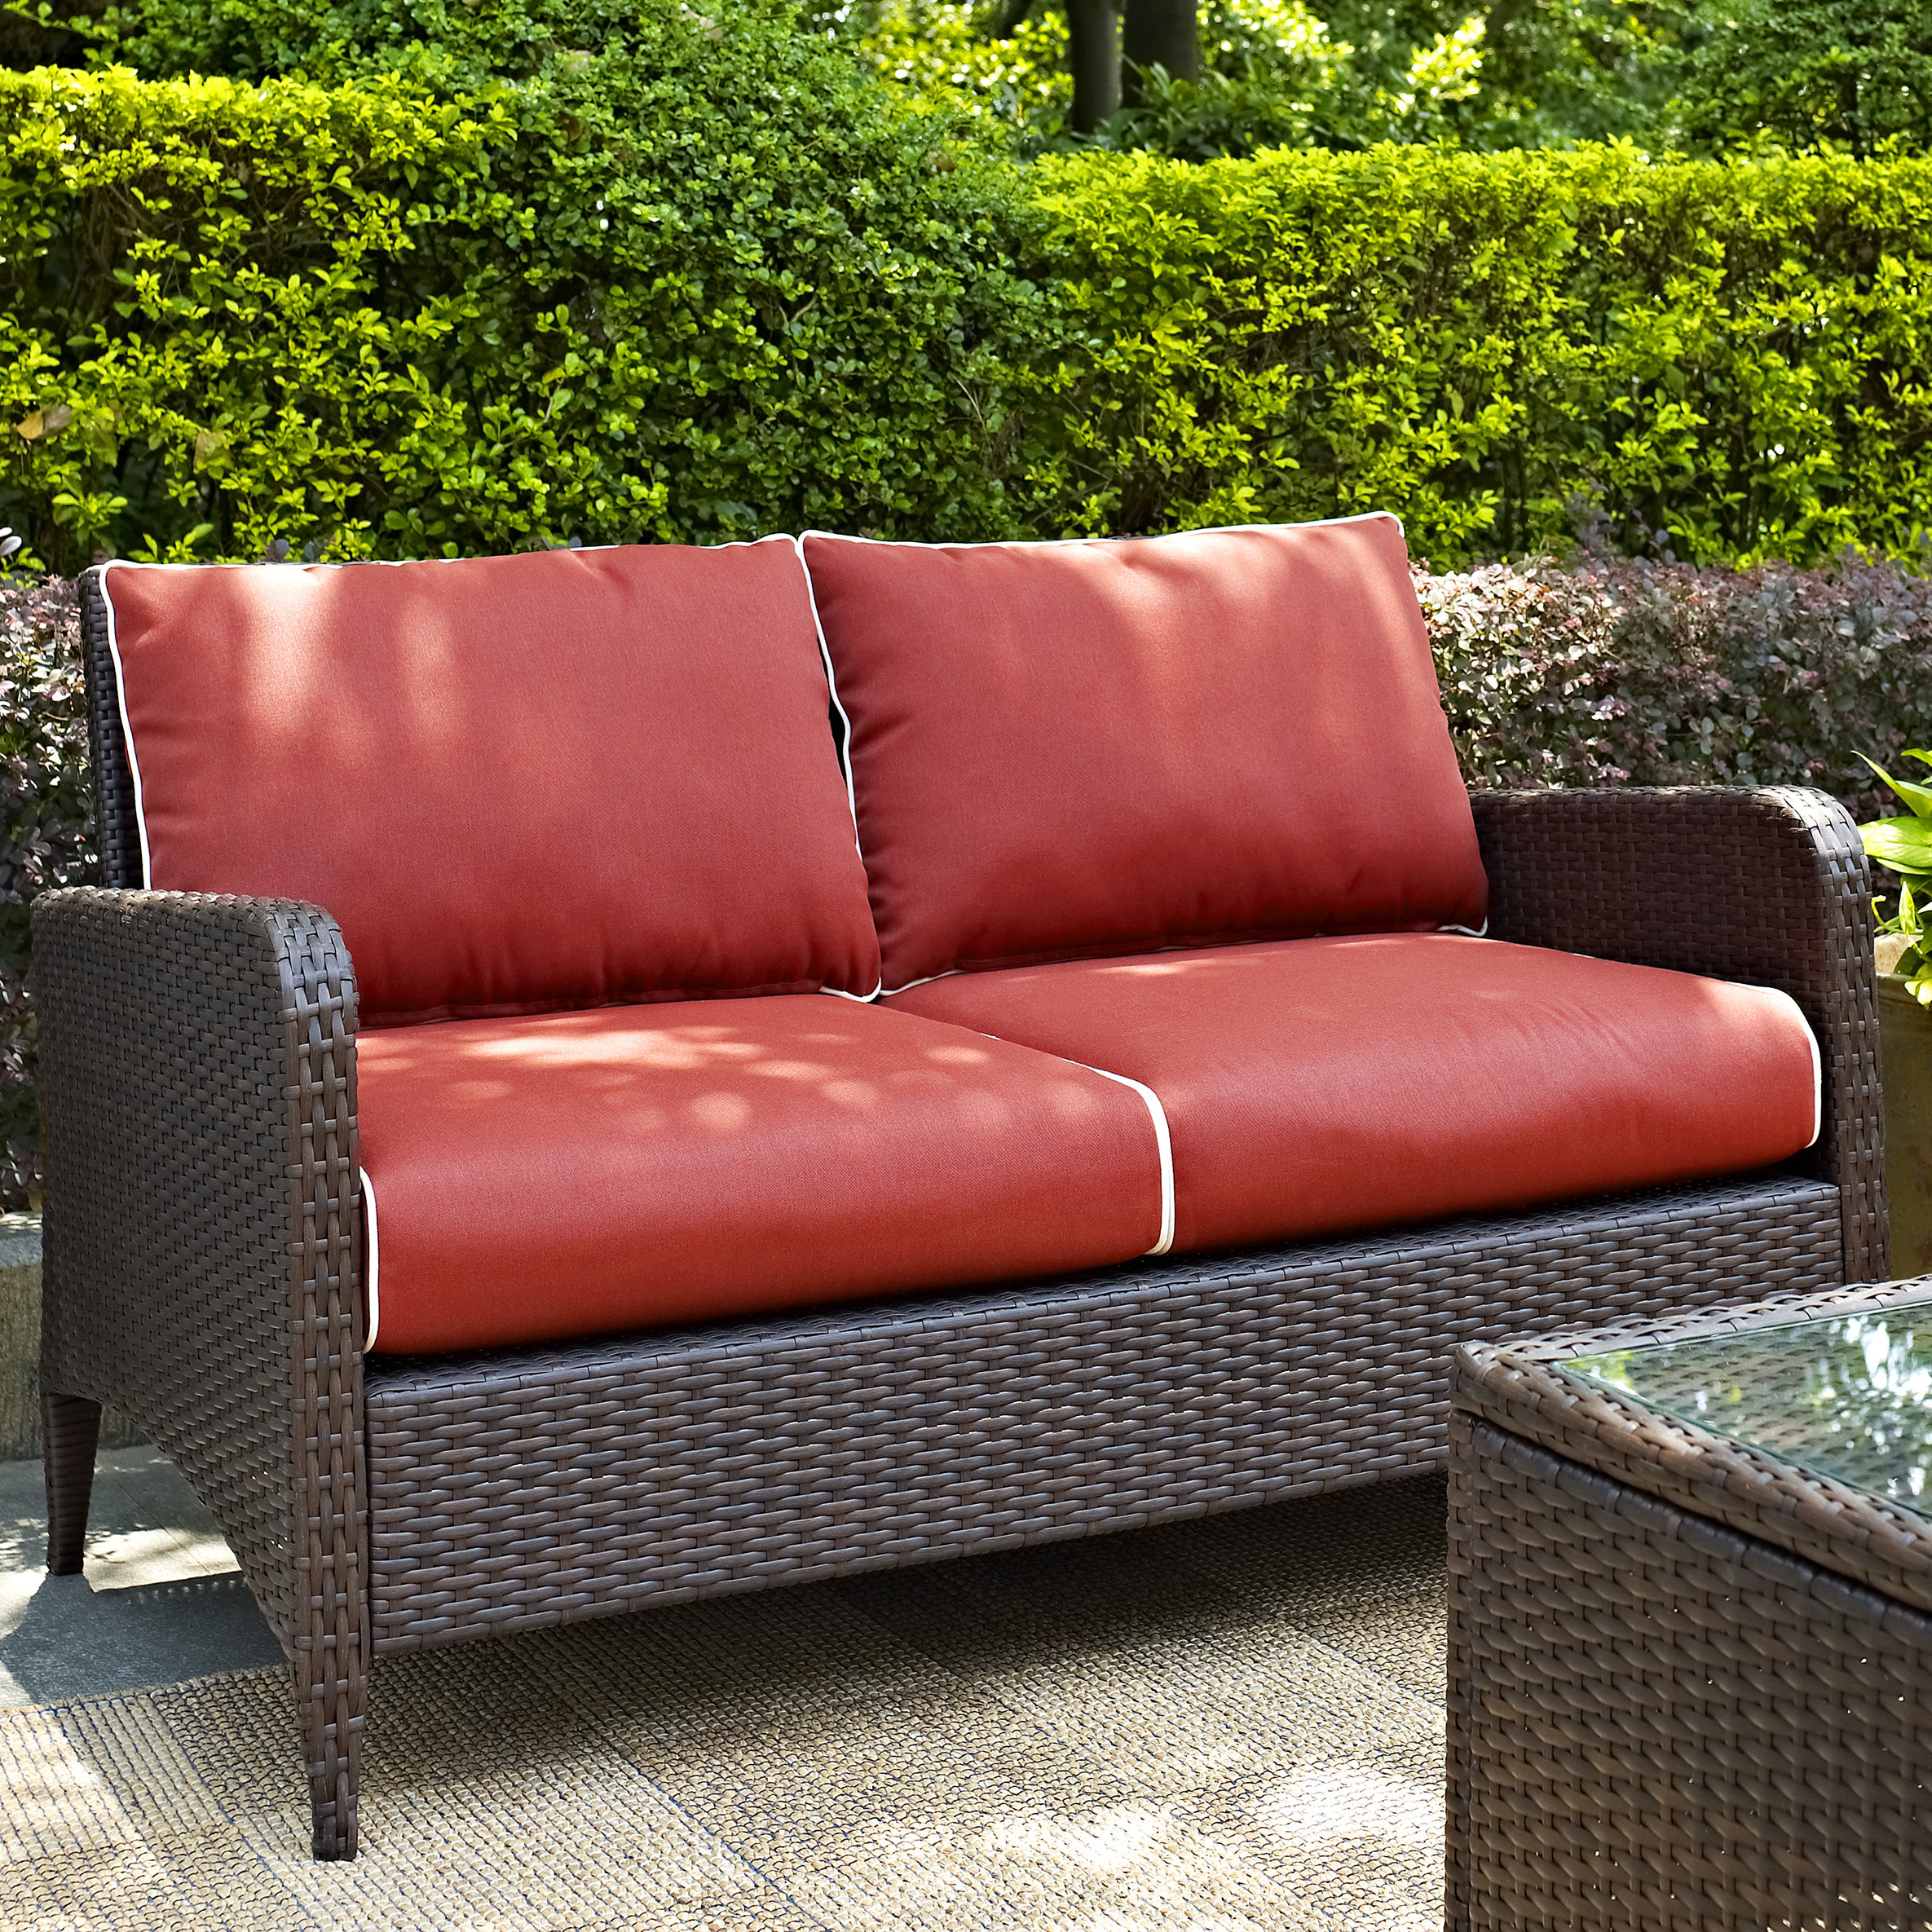 Clifford Loveseats With Cushion Pertaining To Widely Used Mosca Patio Loveseat With Cushions (View 12 of 20)